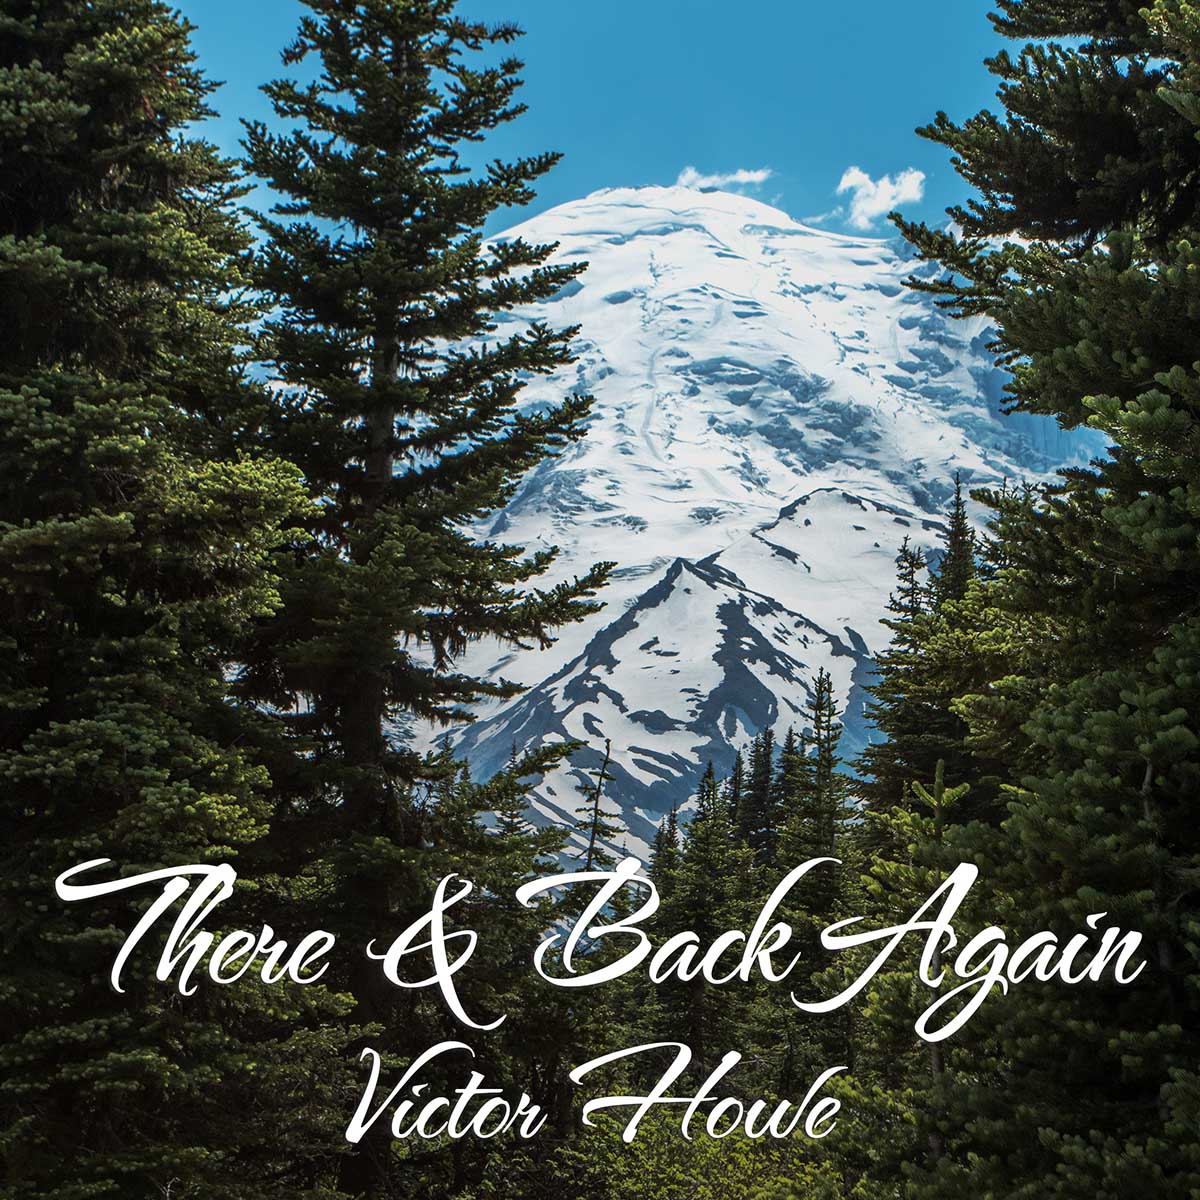 There & Back Again by Victor Howe Fingerstyle Guitar Instrumental